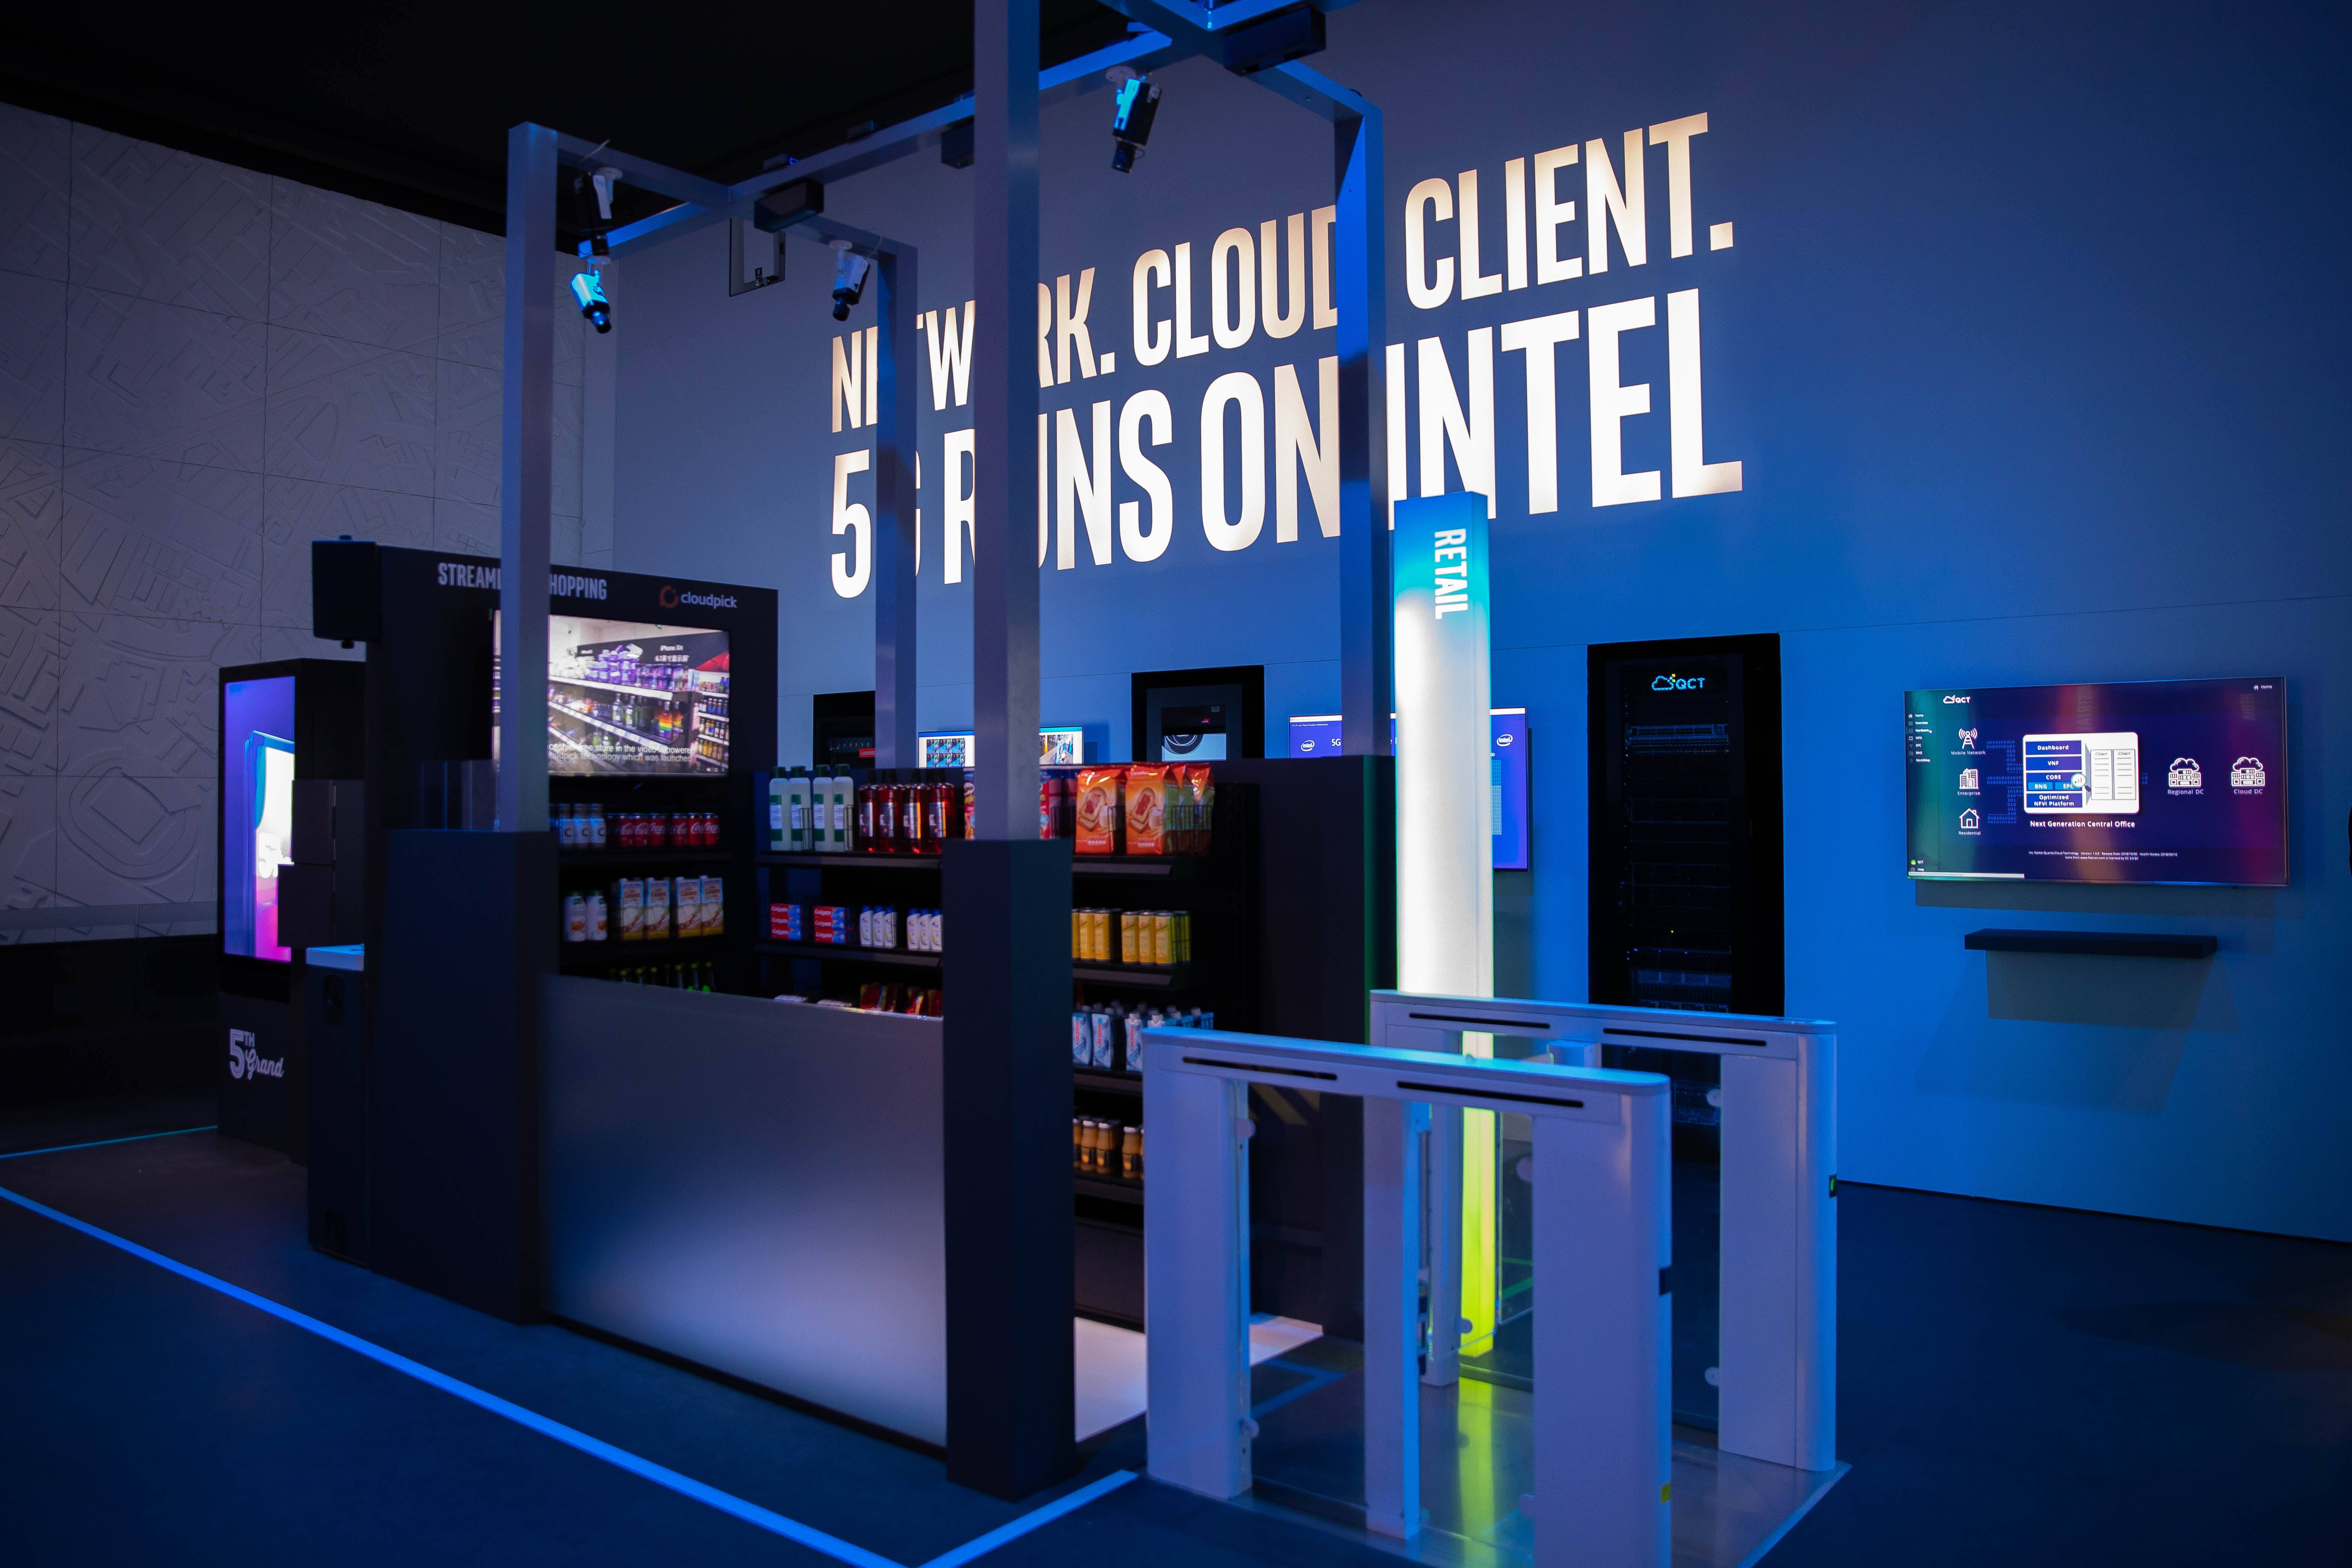 DAY 1: Visitors to Intel's booth at MWC 2019 on Monday, Feb. 25, 2019, experience how artificial intelligence, edge computing and computer vision deliver cutting-edge retail experiences anywhere. Intel showcase its latest technologies in 5G and networking from Feb. 25-28, 2019, at Mobile World Congress 2019 in Barcelona. (Credit: Intel Corporation)